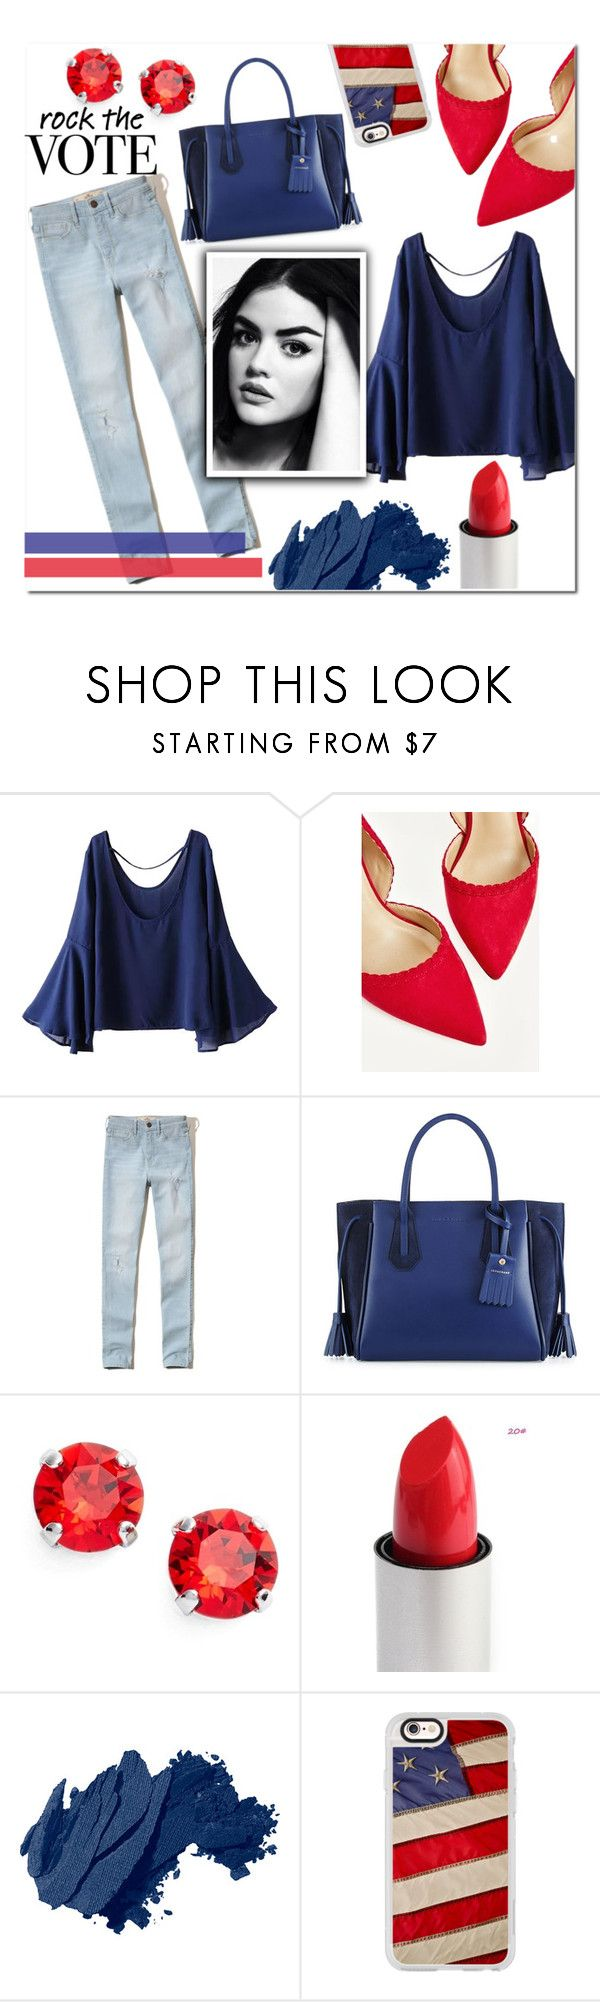 """""""Rock The Vote"""" by gingembre ❤ liked on Polyvore featuring WithChic, Hollister Co., Longchamp, L. Erickson, Bobbi Brown Cosmetics and Casetify"""